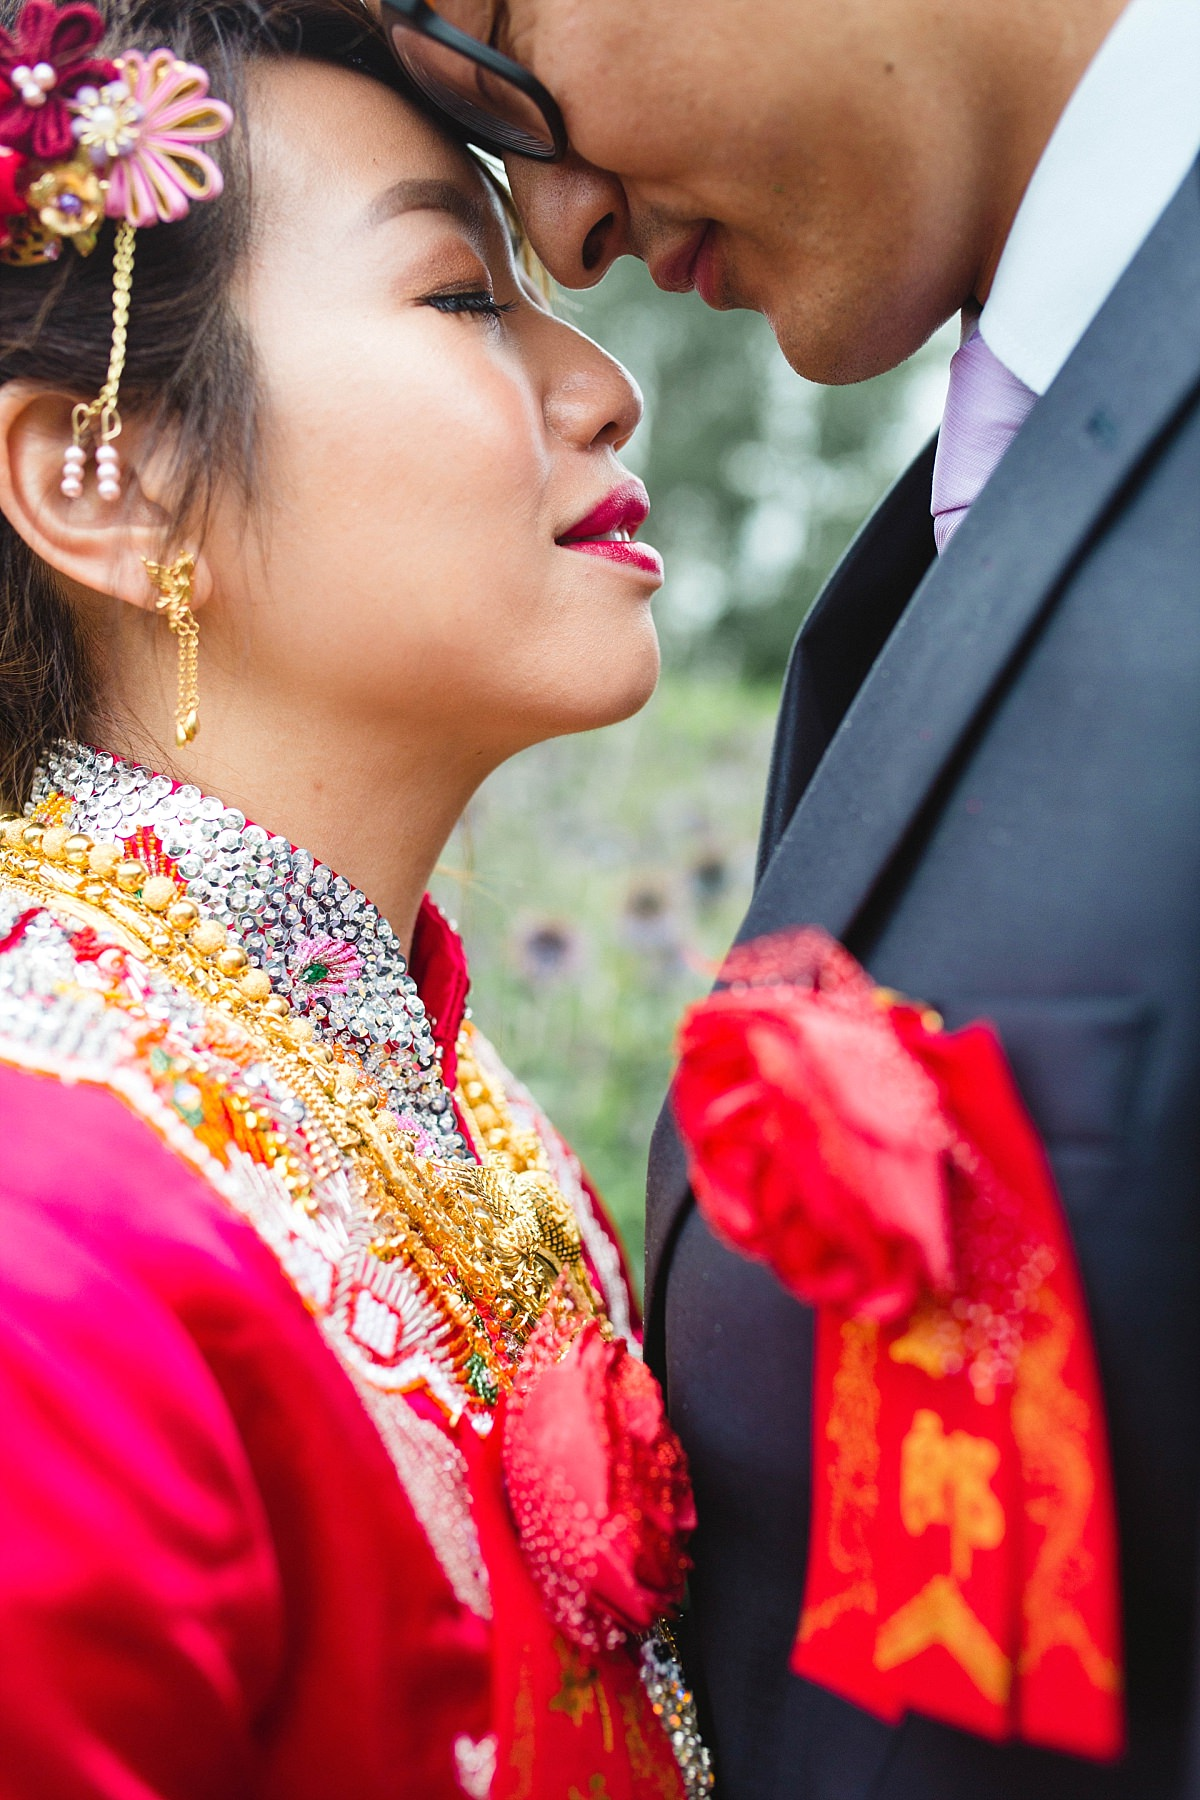 chinese wedding glasgow pollok park see woo 29-19.jpg